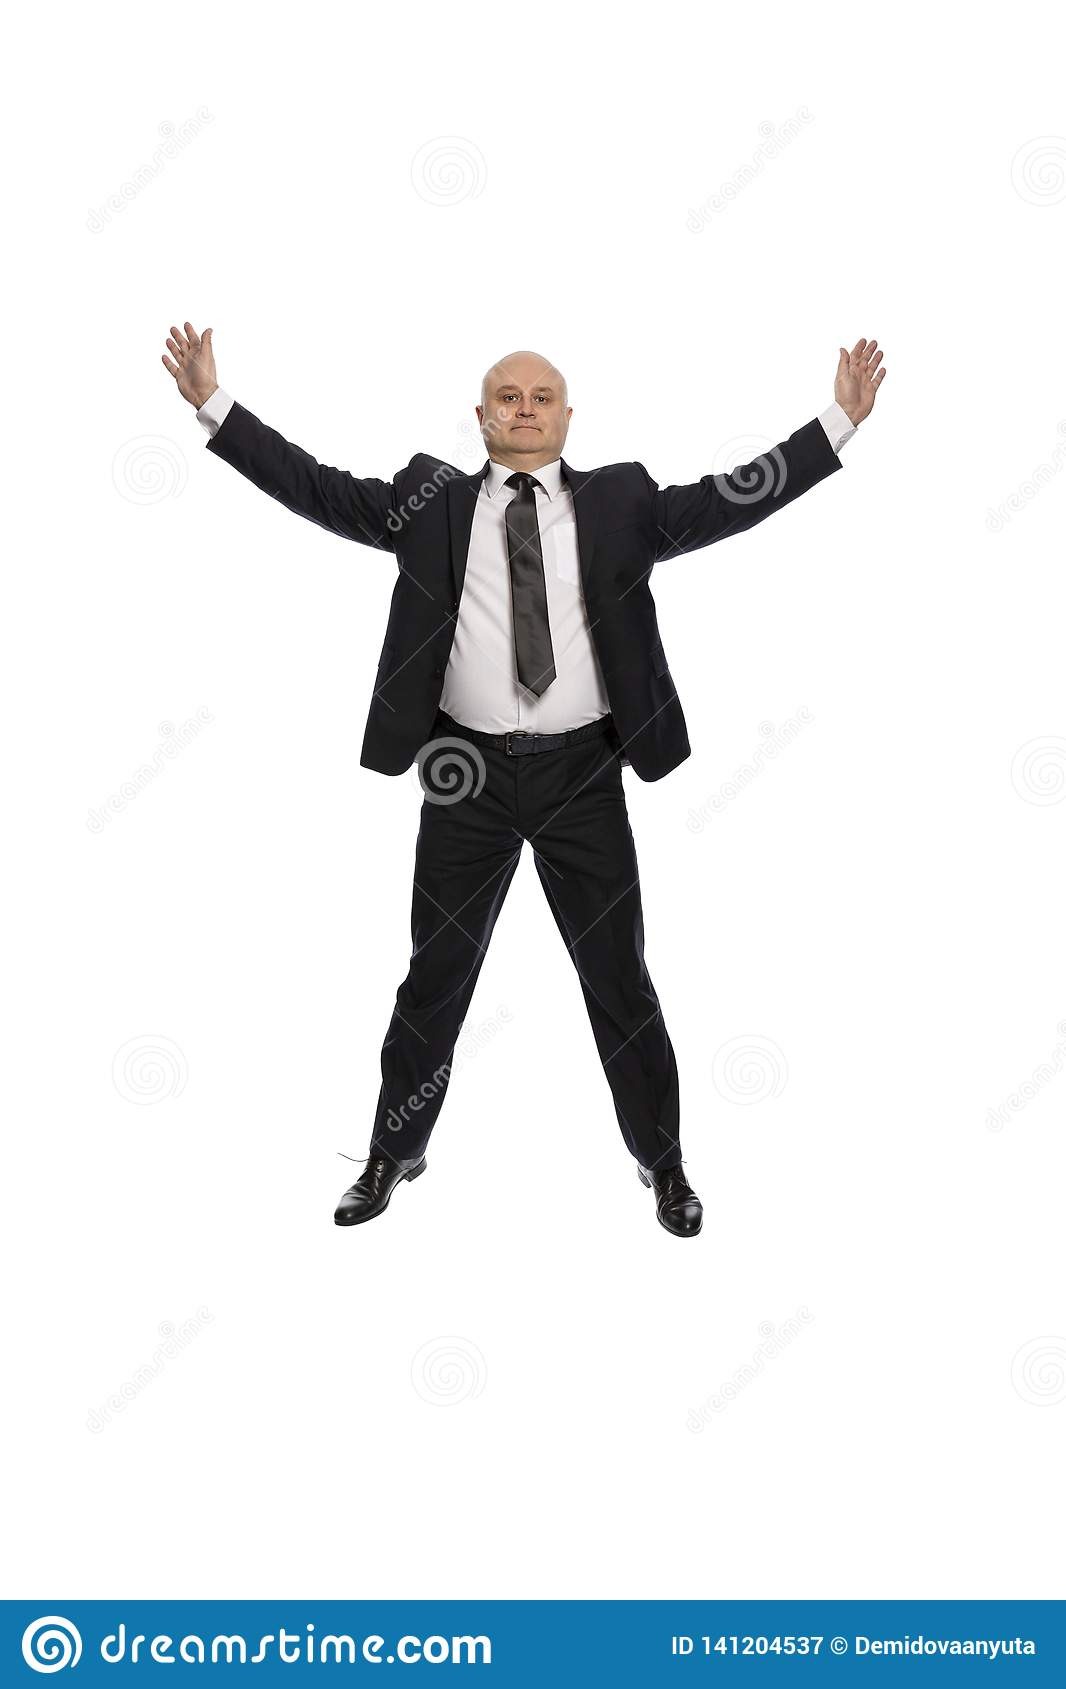 Bald middle-aged man in a suit jumping, businessman, isolated on white background